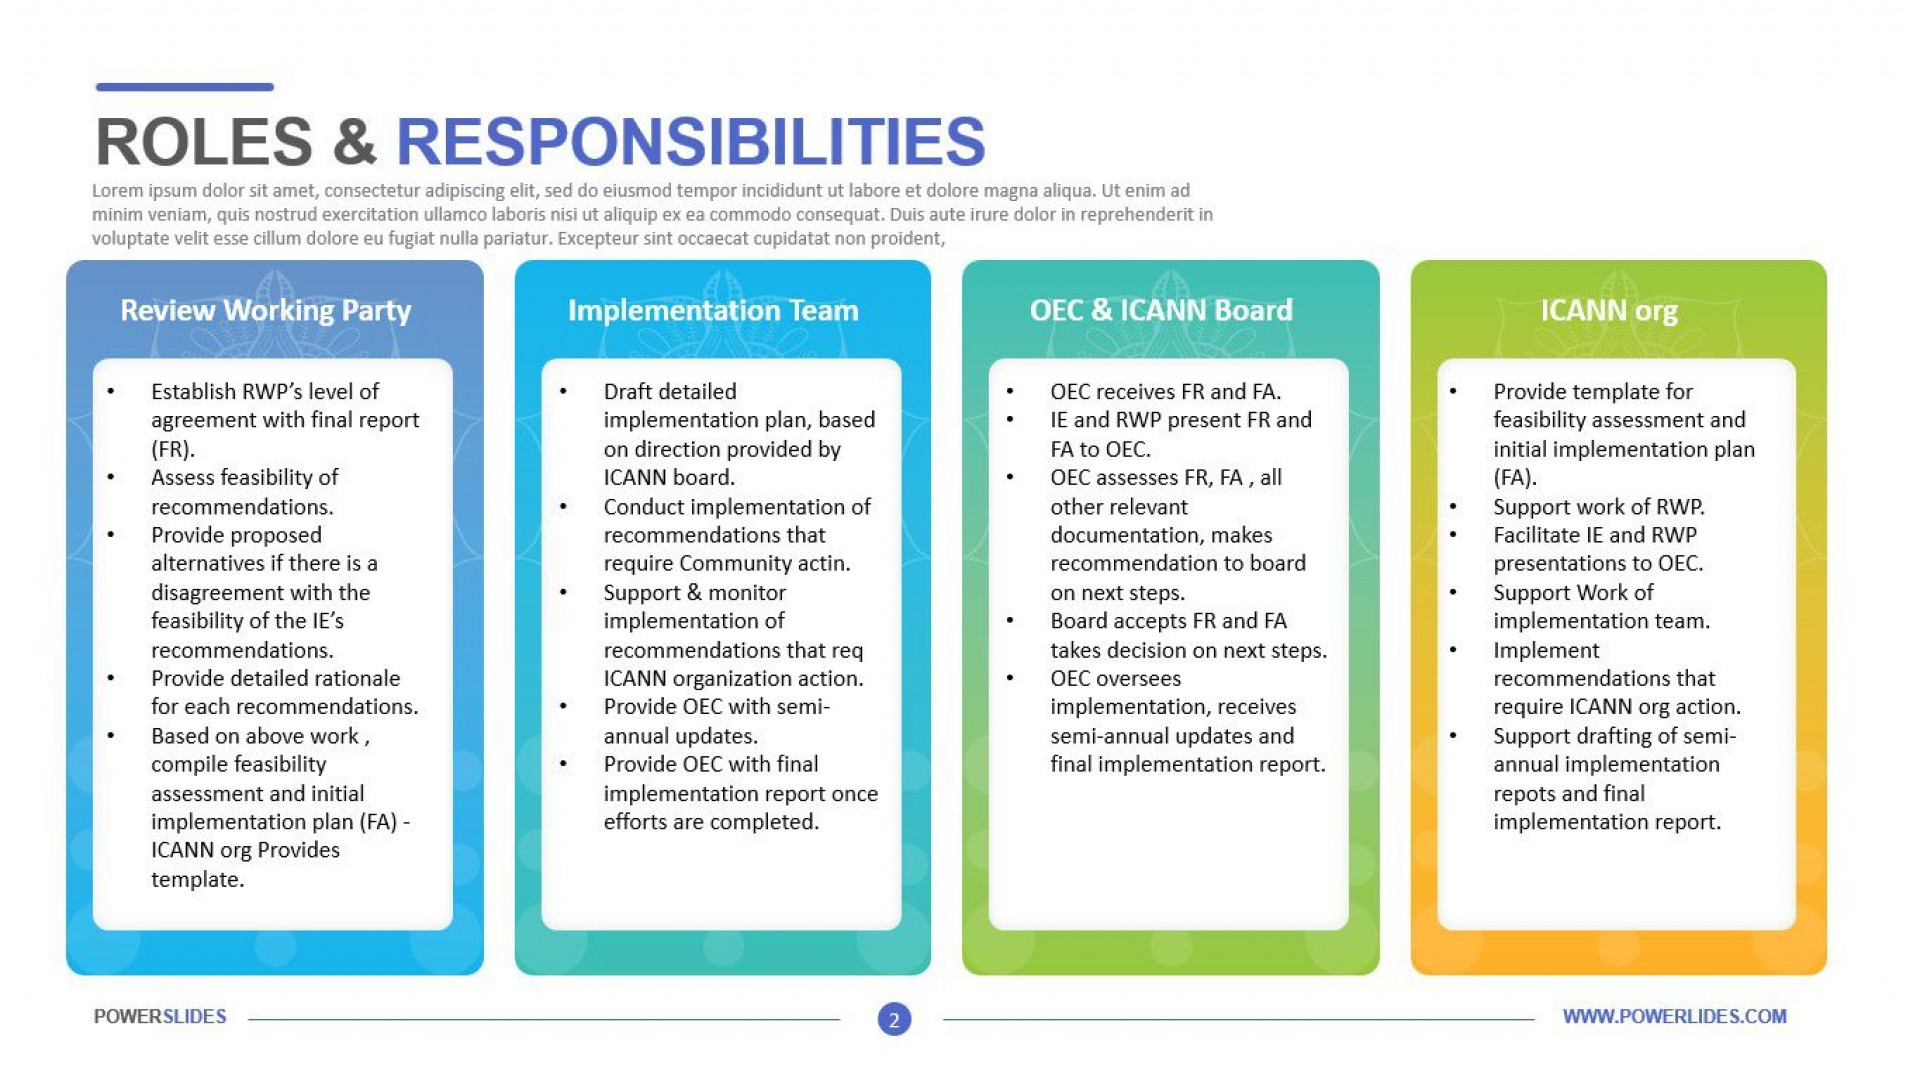 009 Rare Role And Responsibilitie Matrix Template Powerpoint Sample 1920